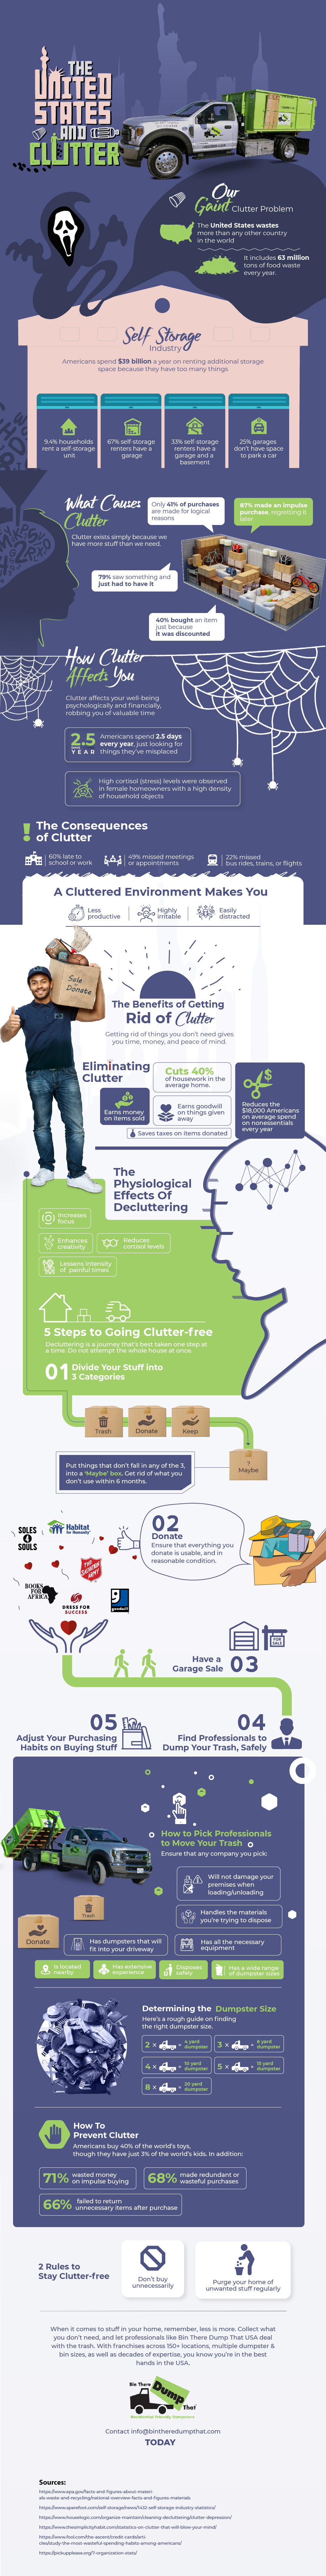 Decluttering Tips Infographic - How Does Clutter H